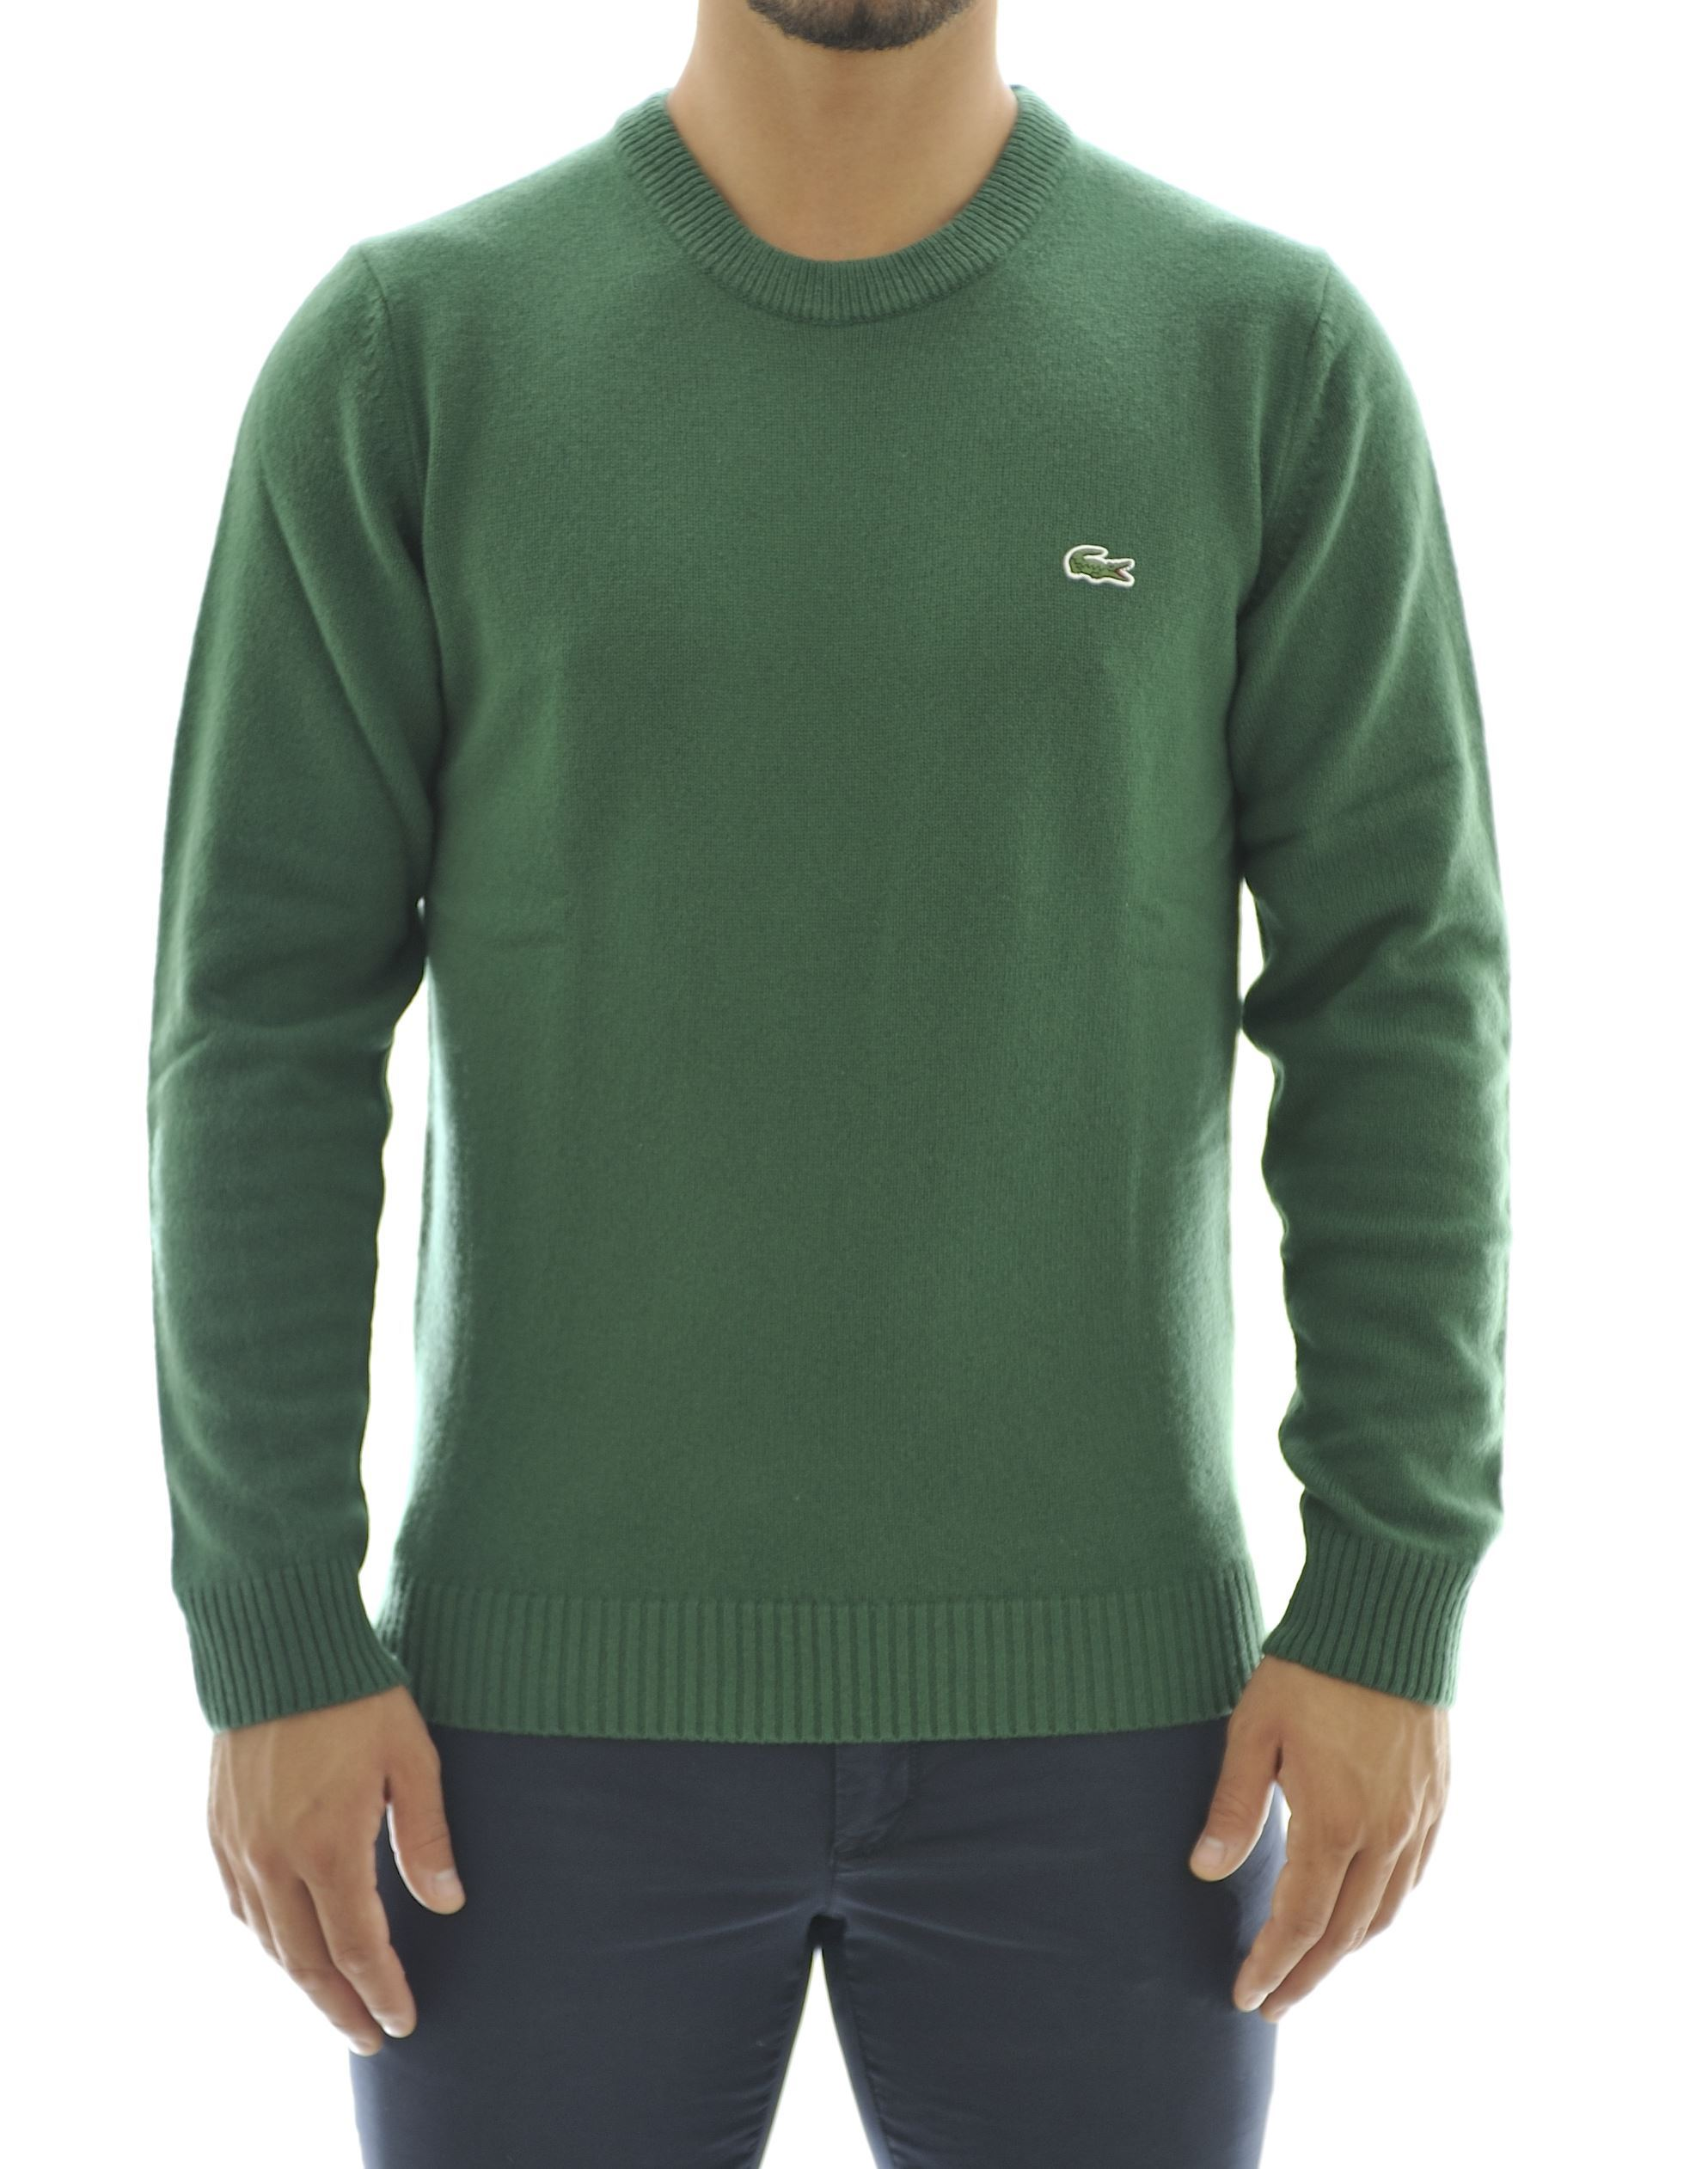 Picture of Green wool crewneck sweater